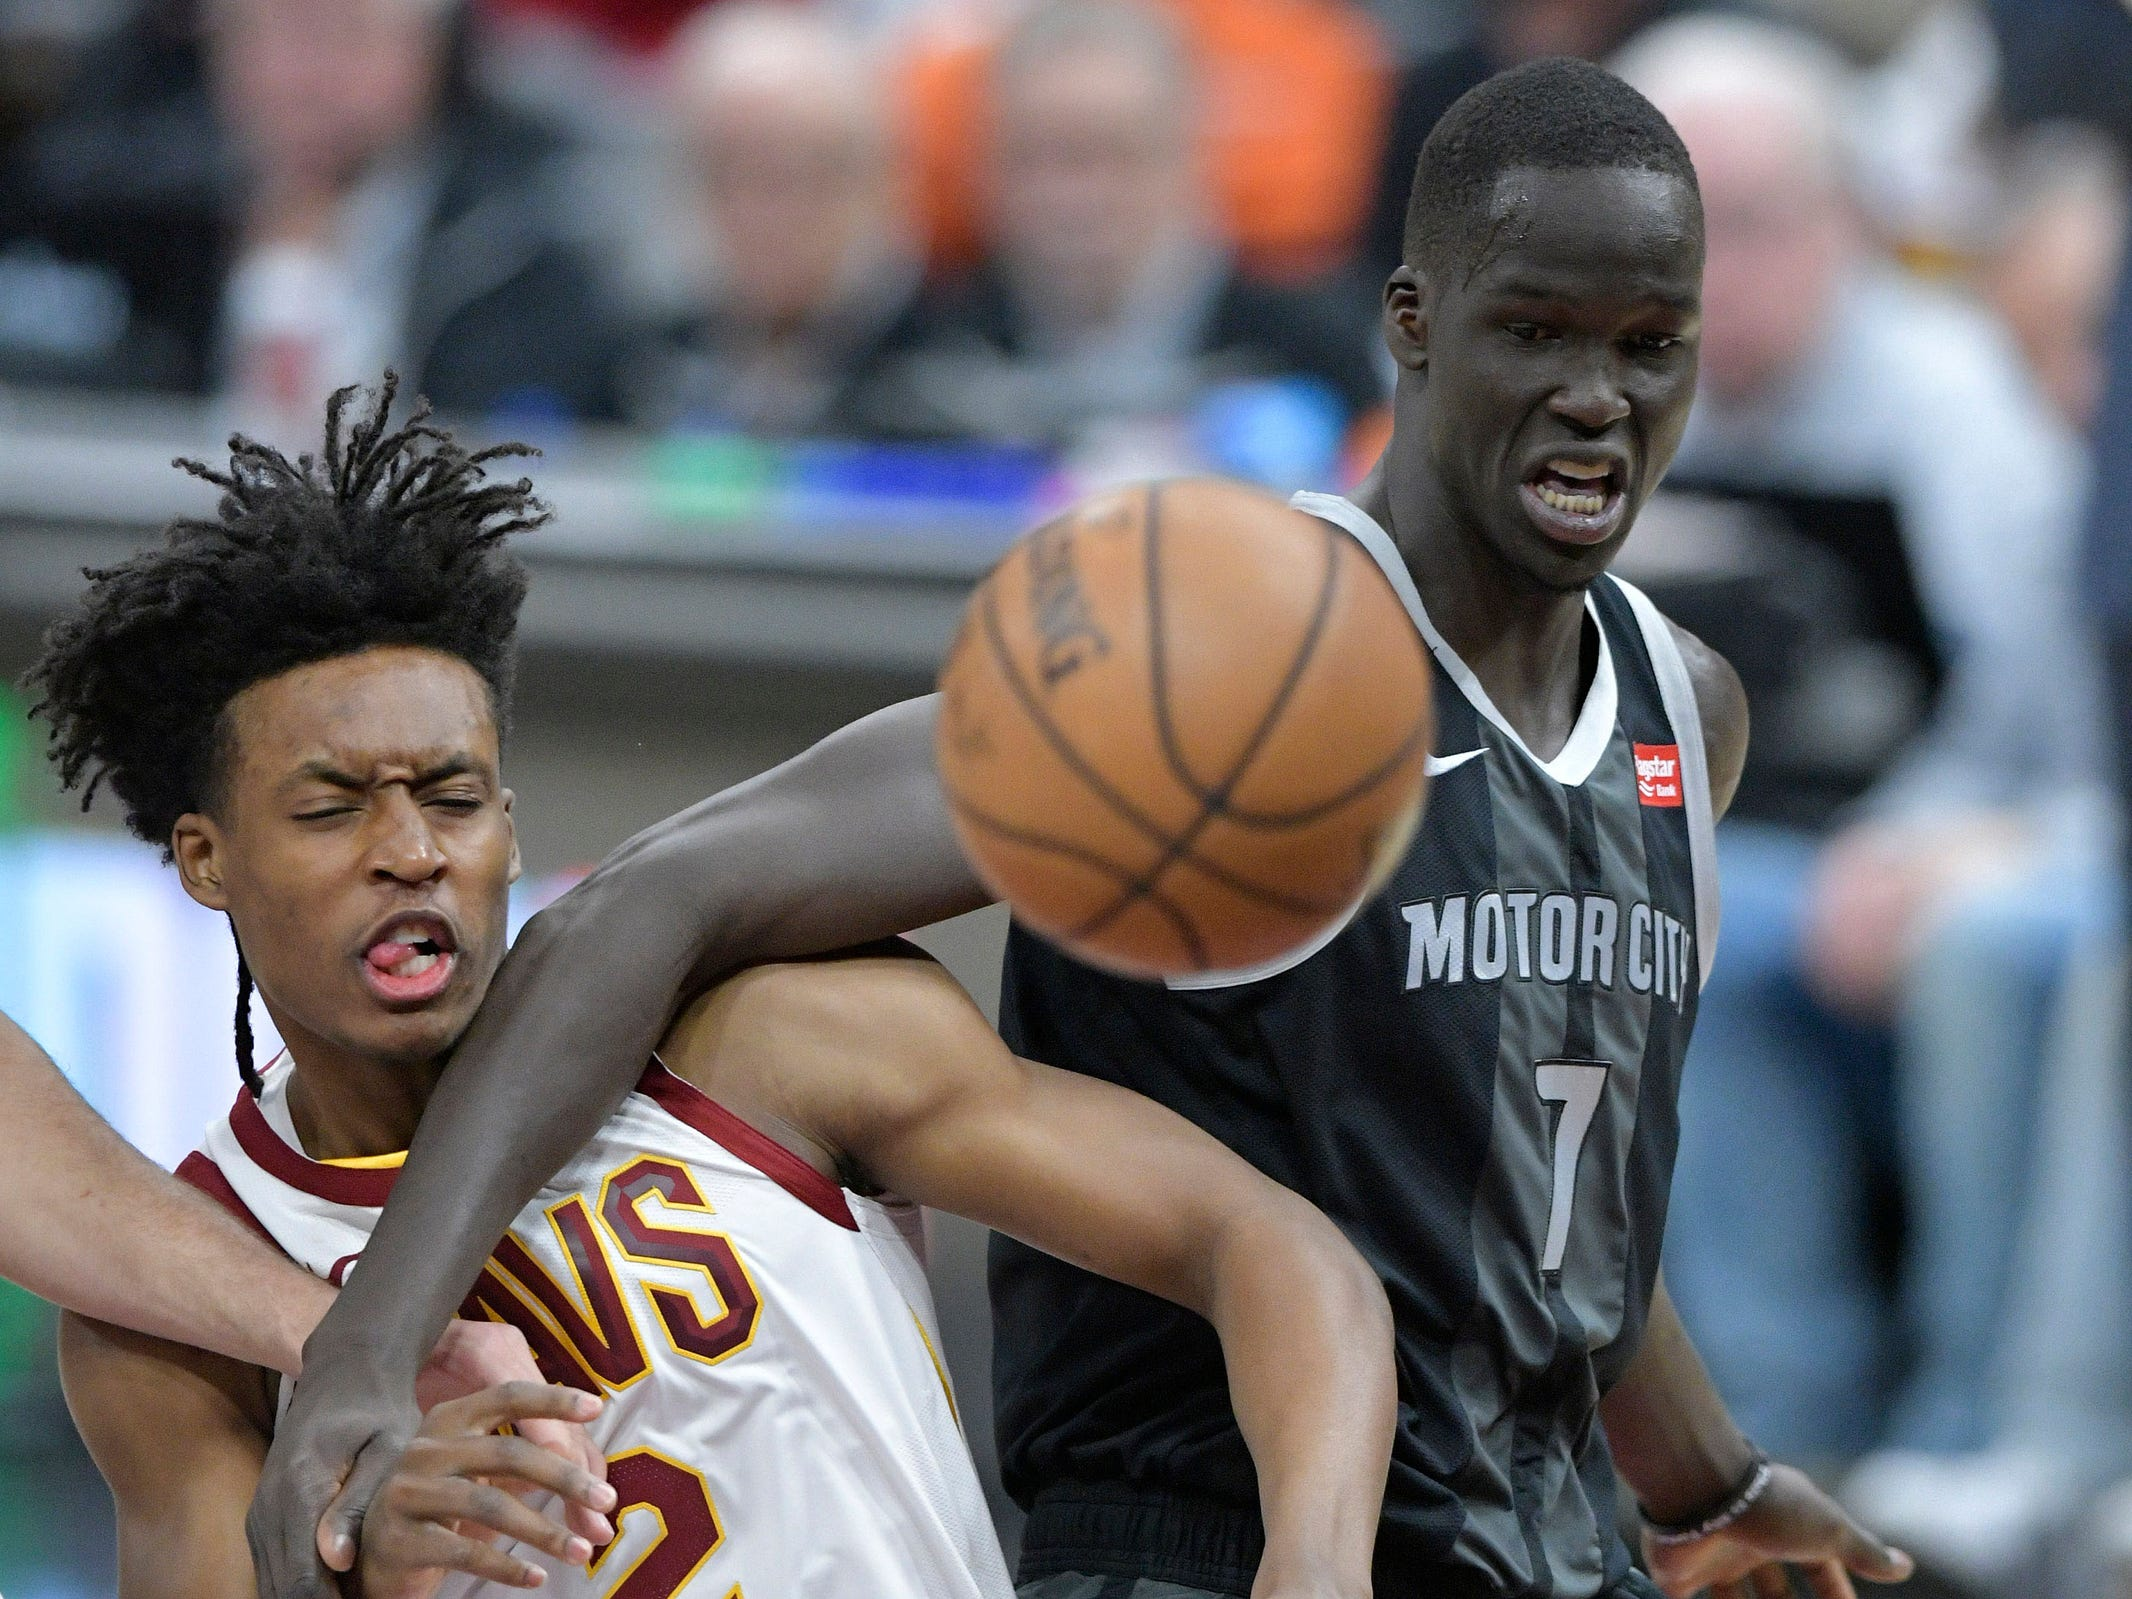 Cleveland Cavaliers guard Collin Sexton and Detroit Pistons forward Thon Maker go for a loose ball in the first quarter at Quicken Loans Arena, March 18, 2019.